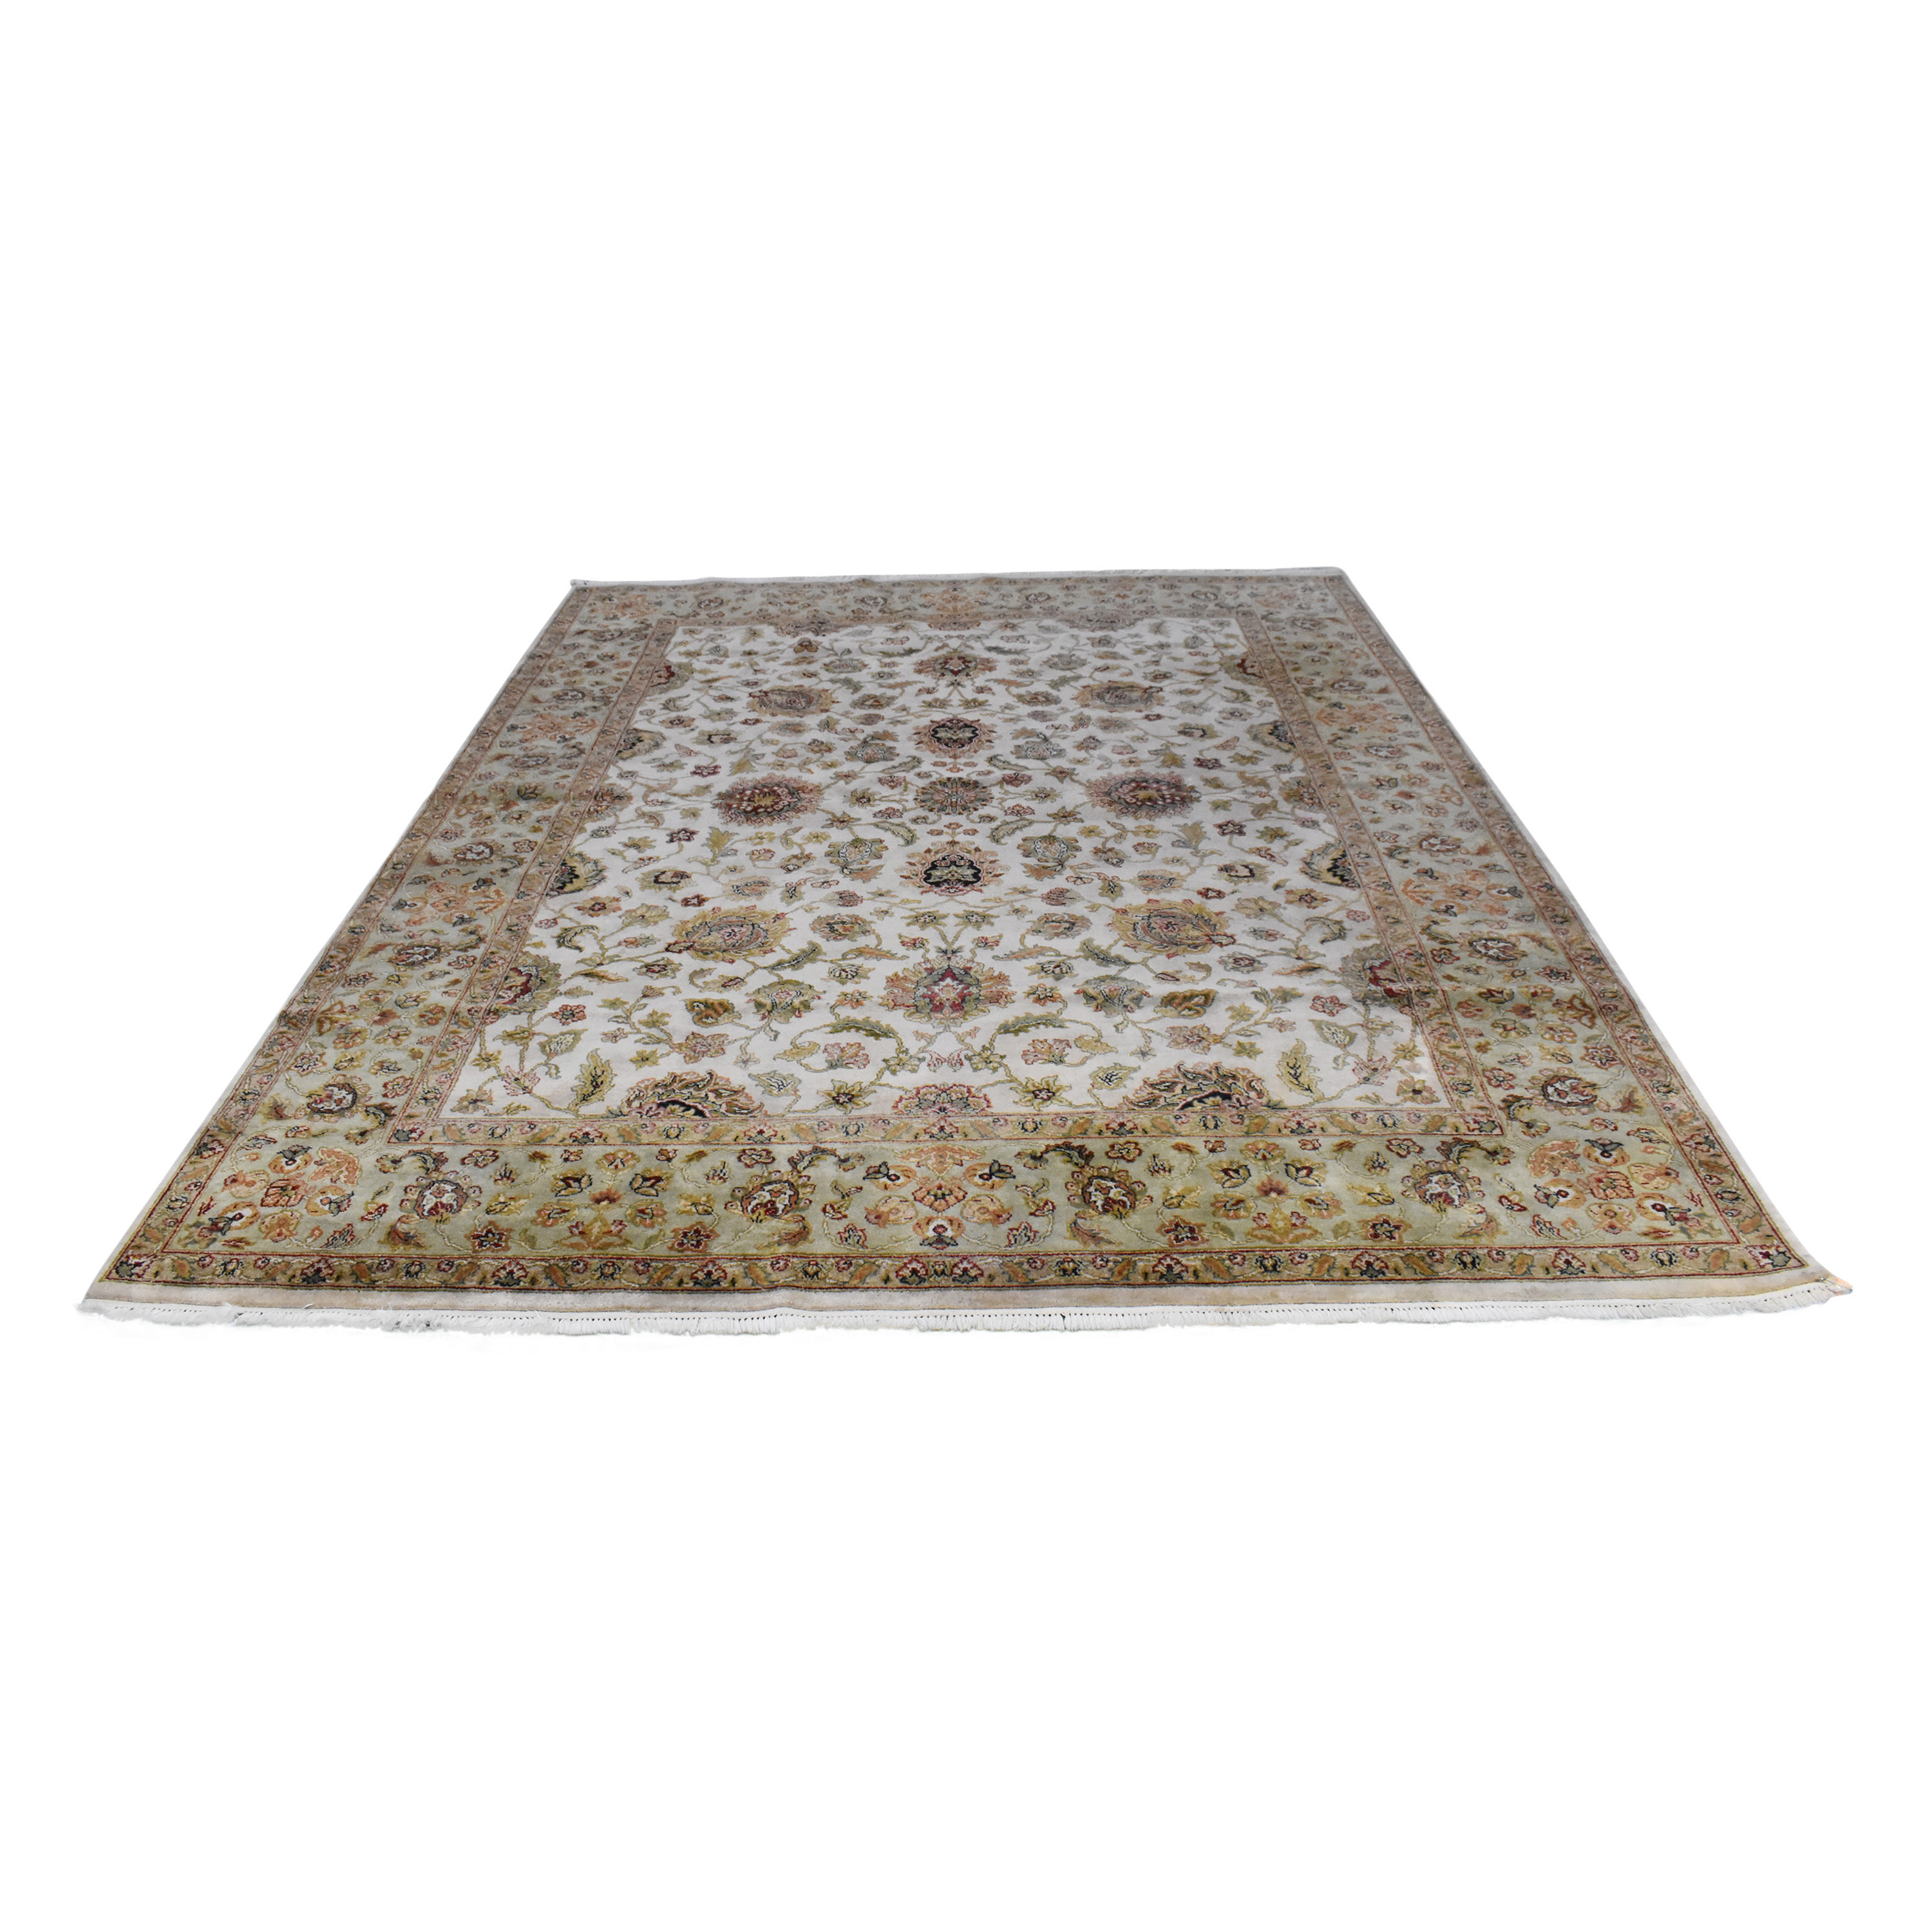 Macy's Jaipur Collection Area Rug / Rugs